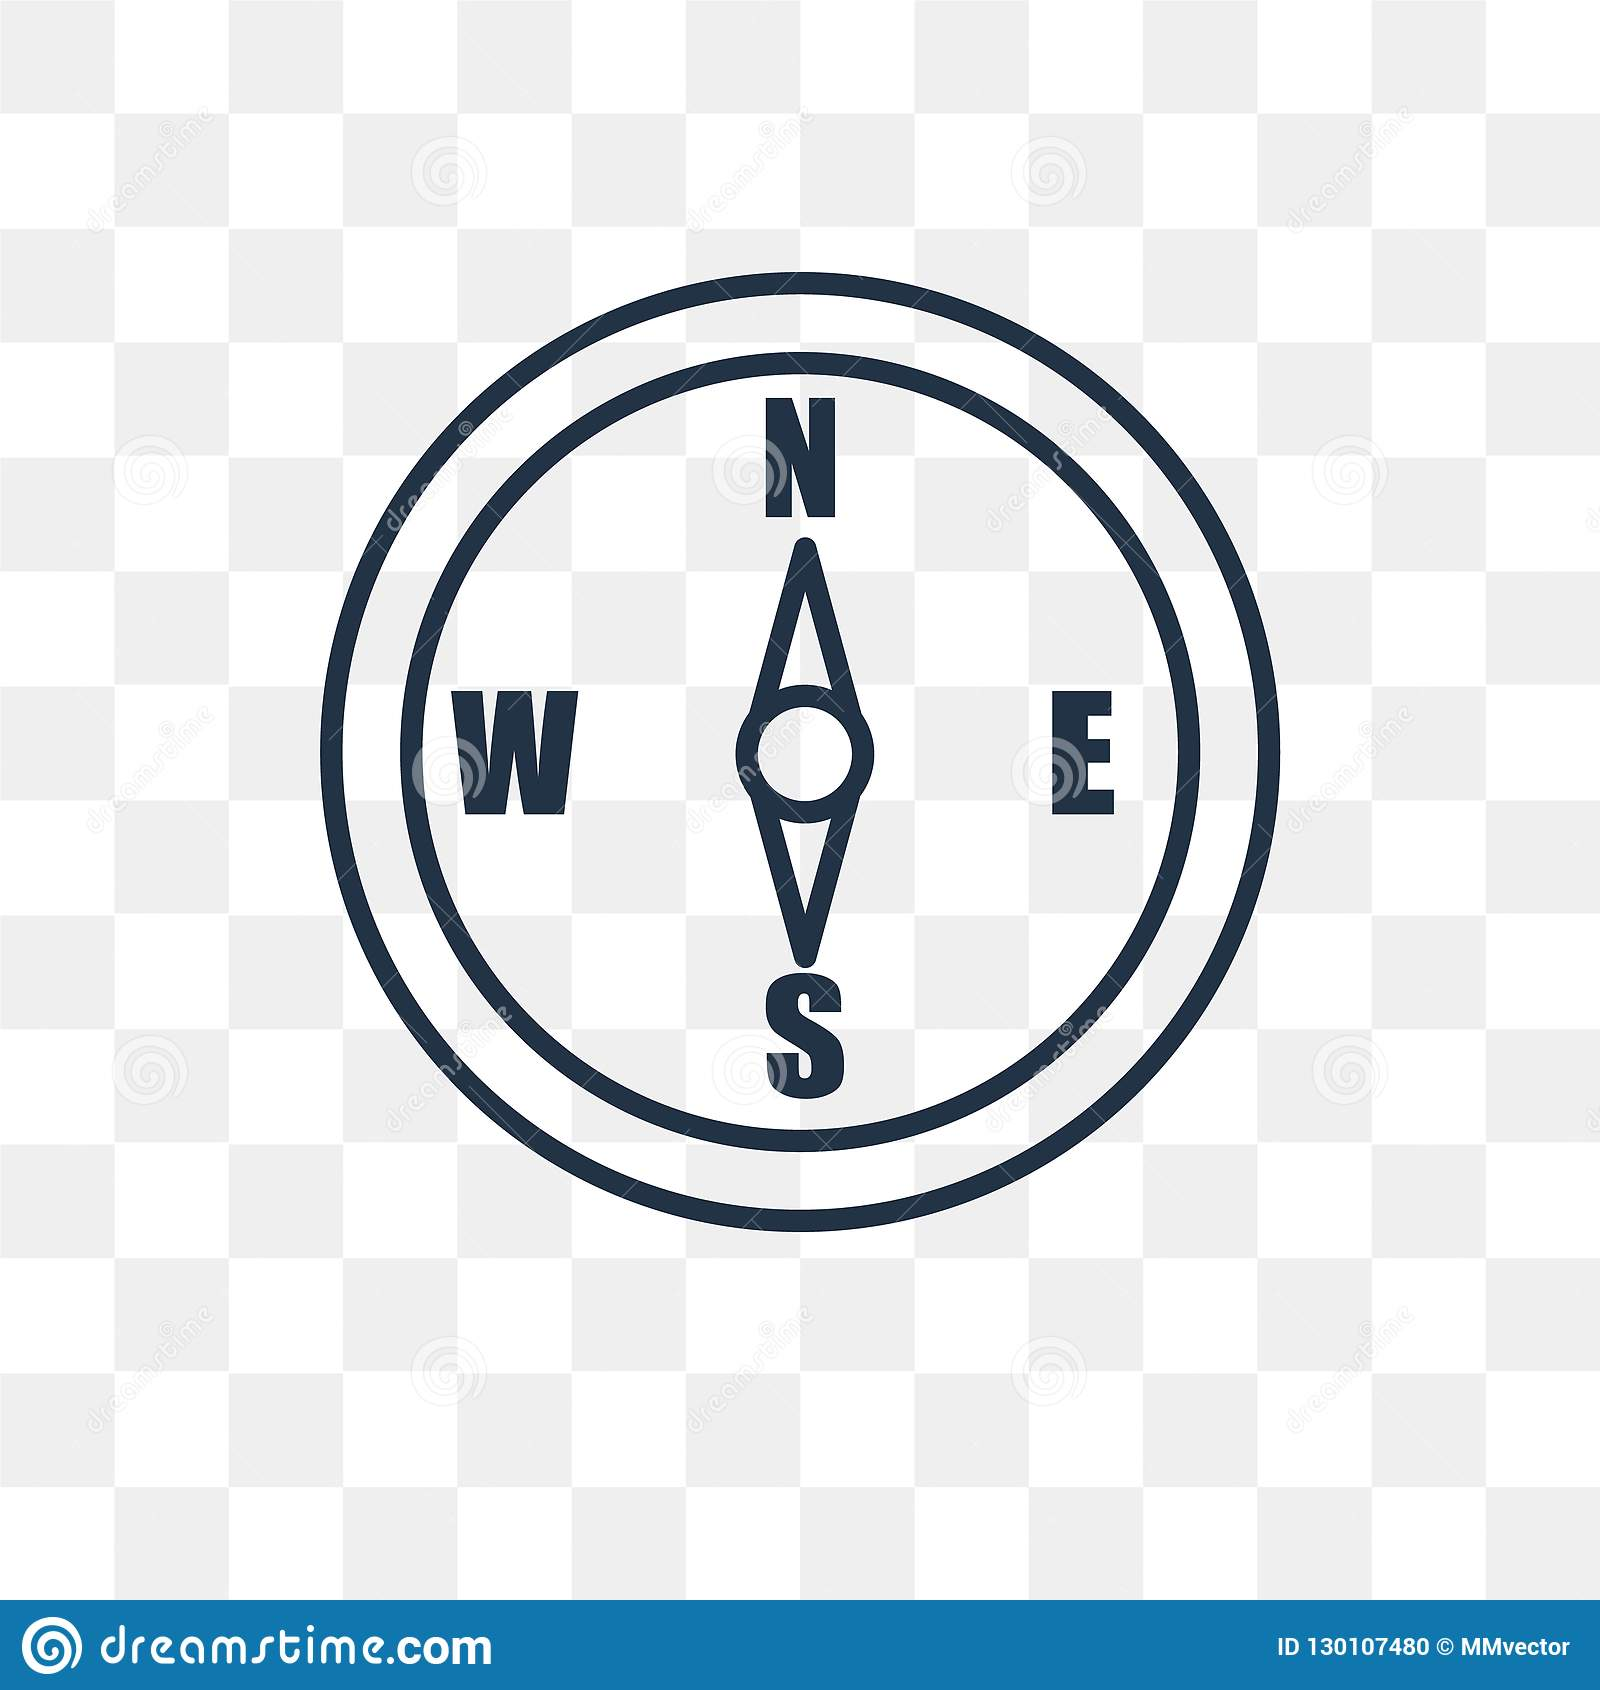 Compass Vector Icon Isolated On Transparent Background, Linear C.